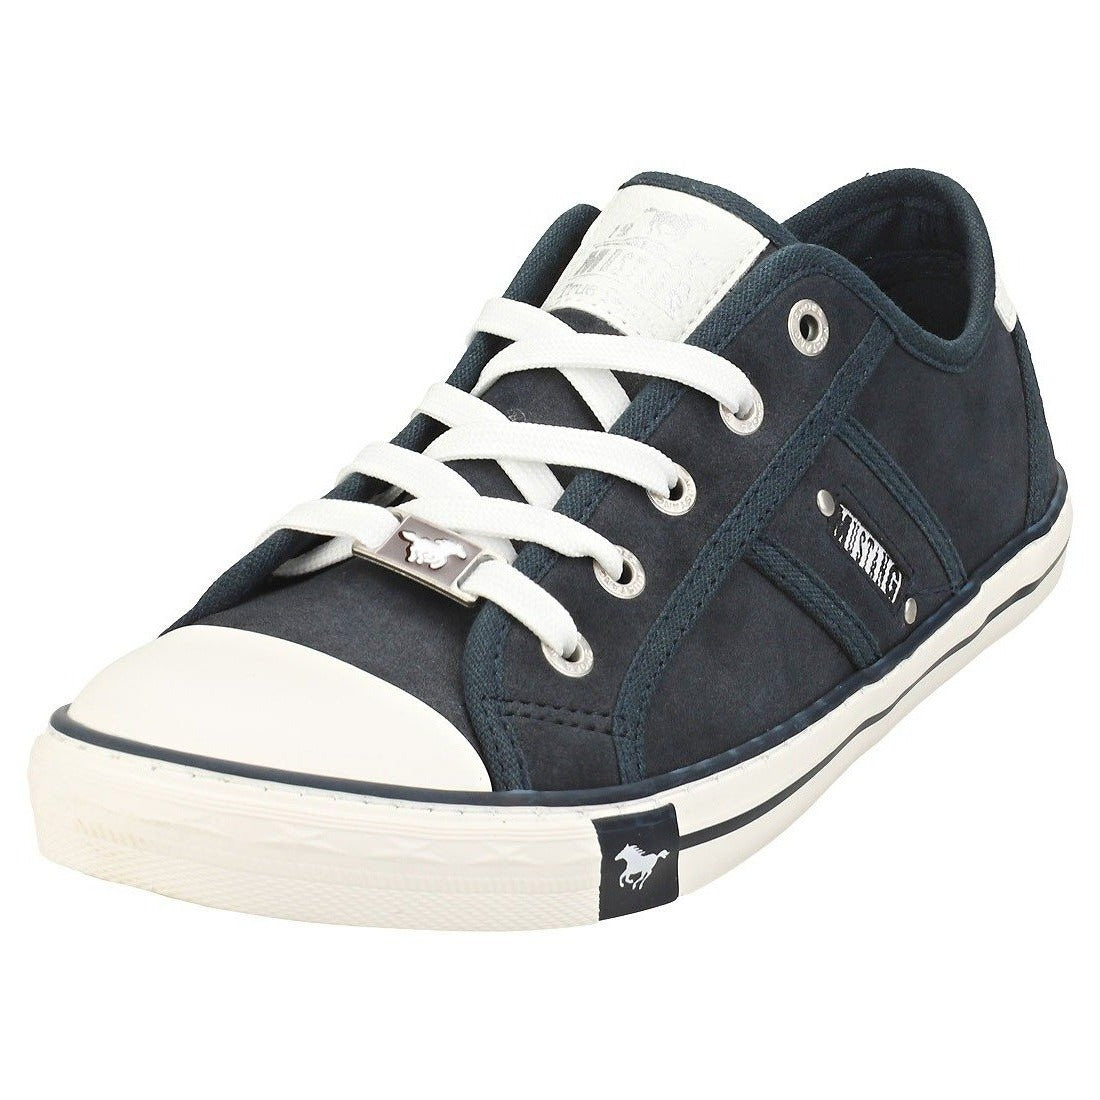 Mustang Ladies/Women 1099-323-820 Navy Lace up Trainer Shoes